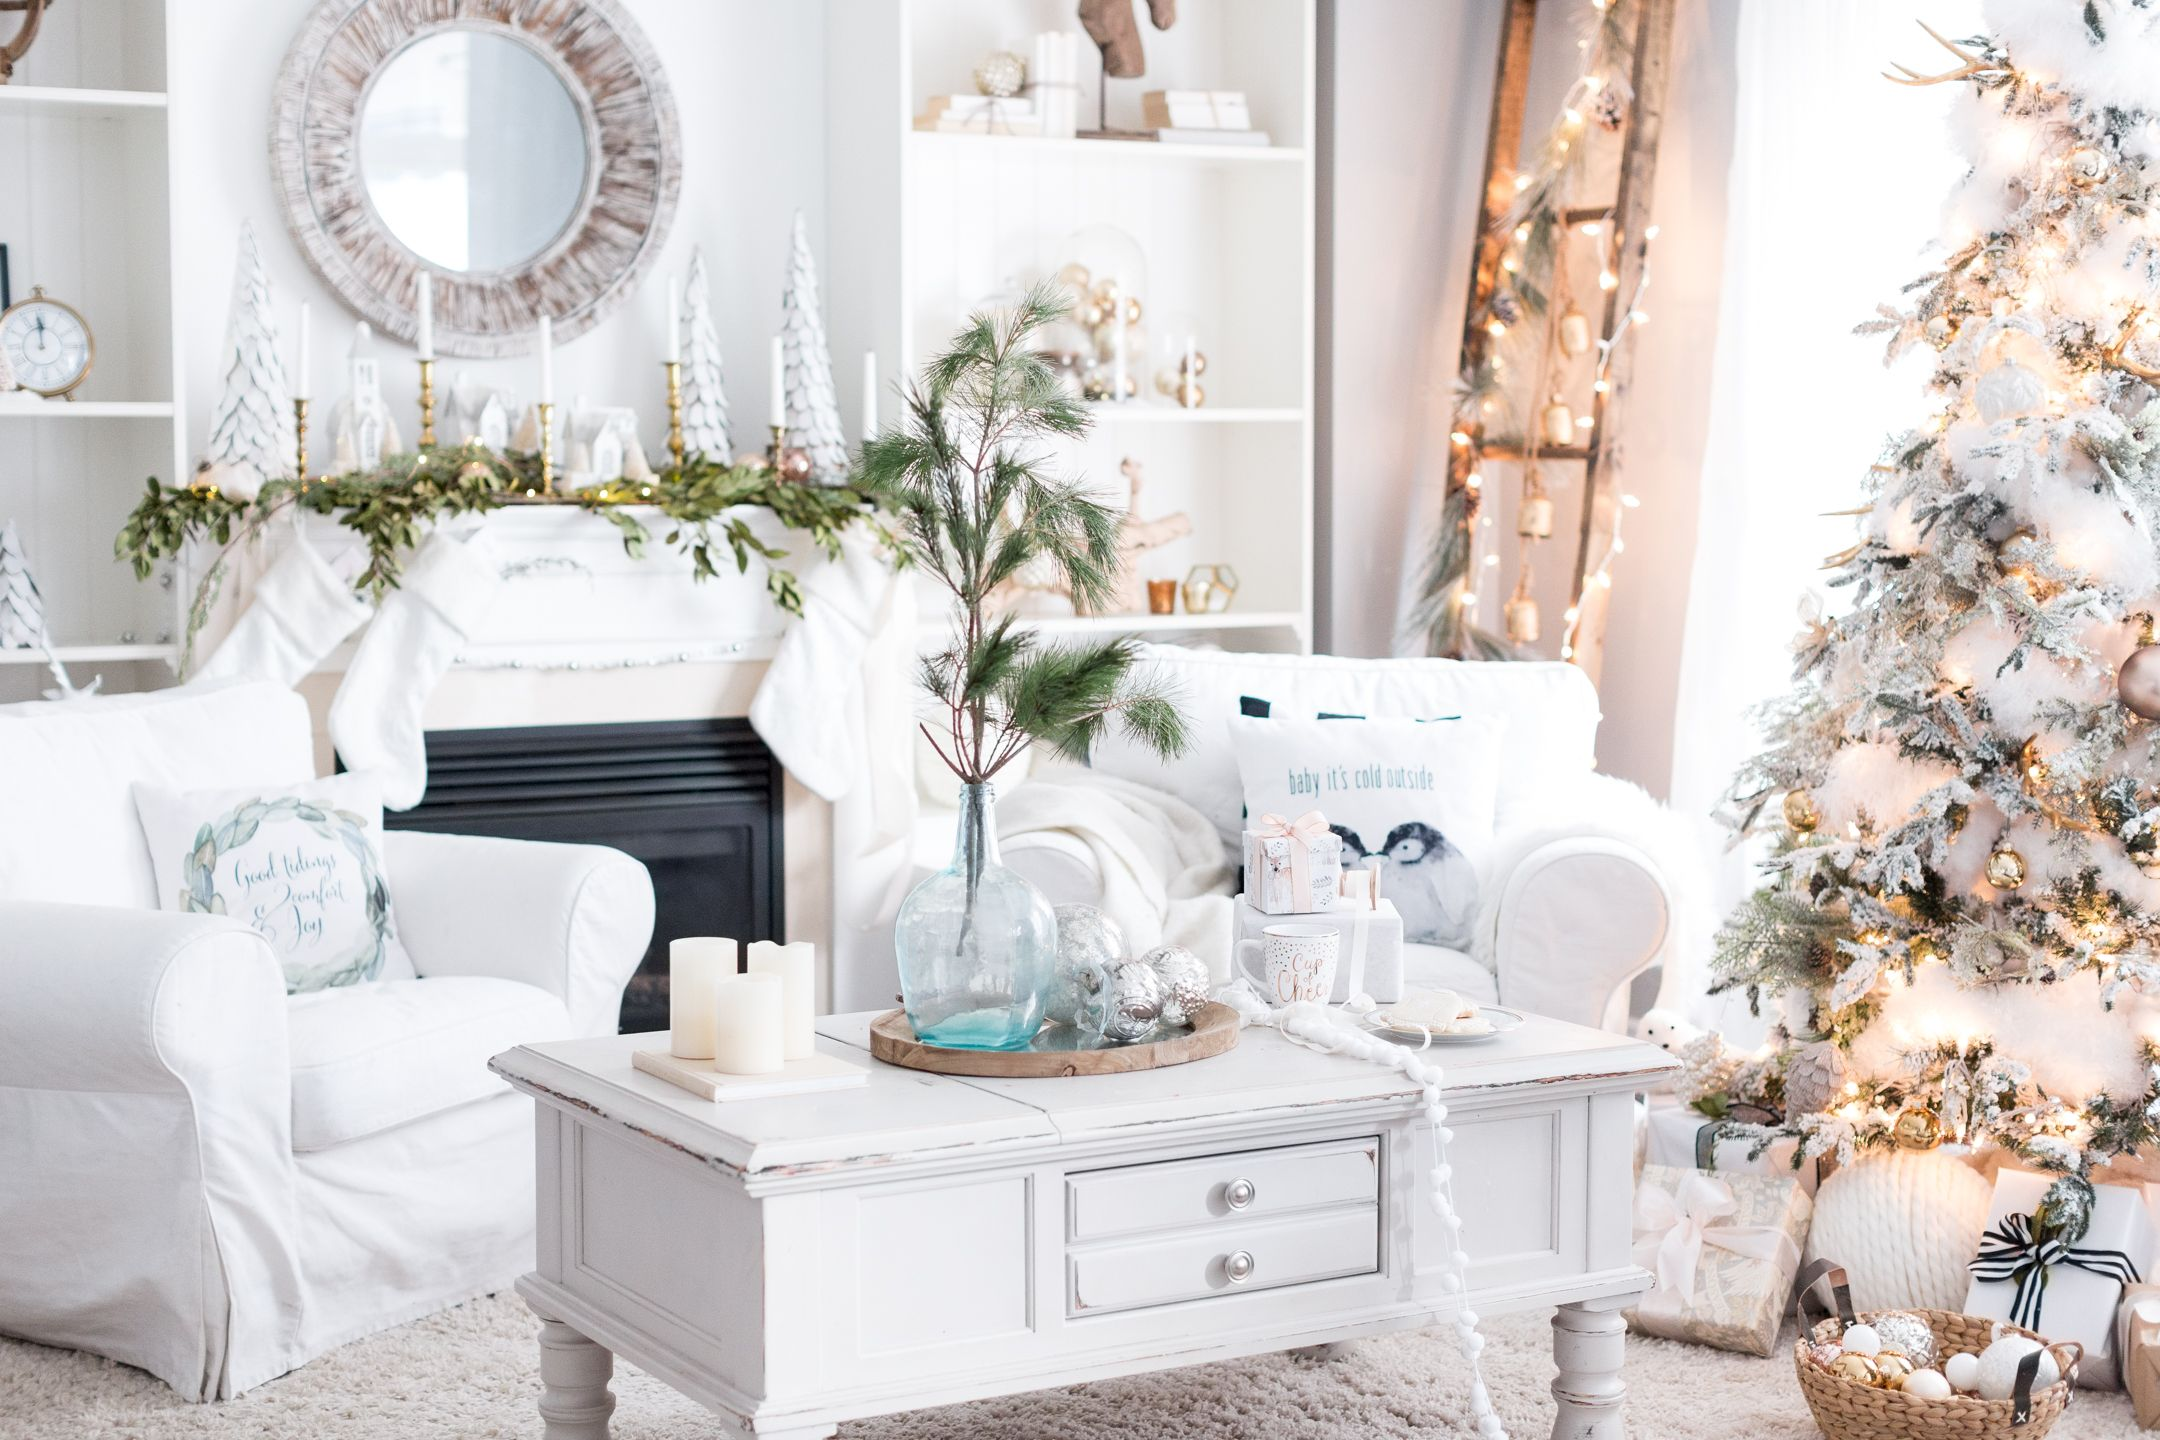 27 Easy Christmas Home Decor Ideas